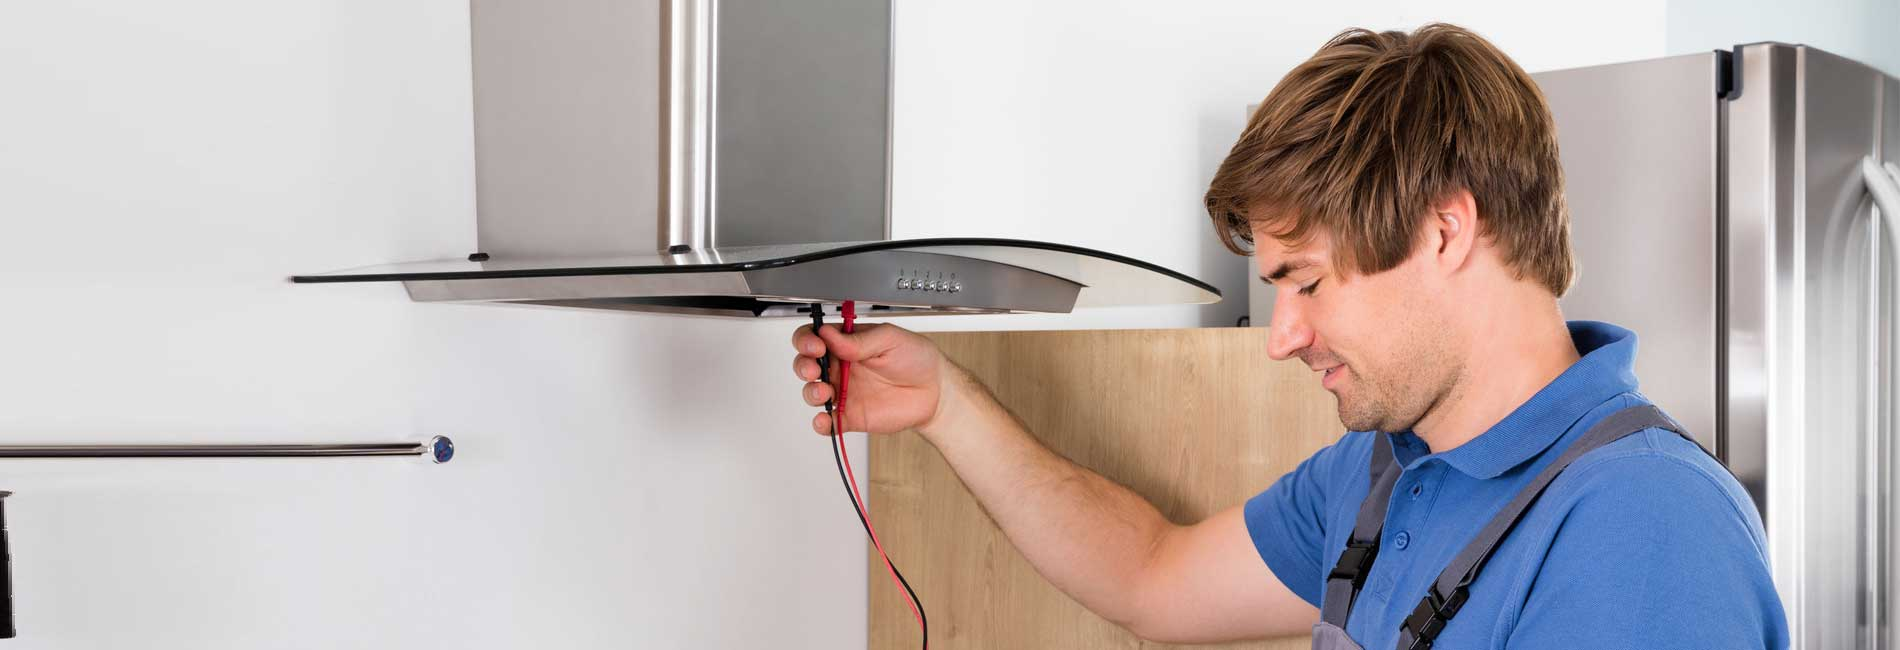 Whirlpool Chimney Repair in Kovalam